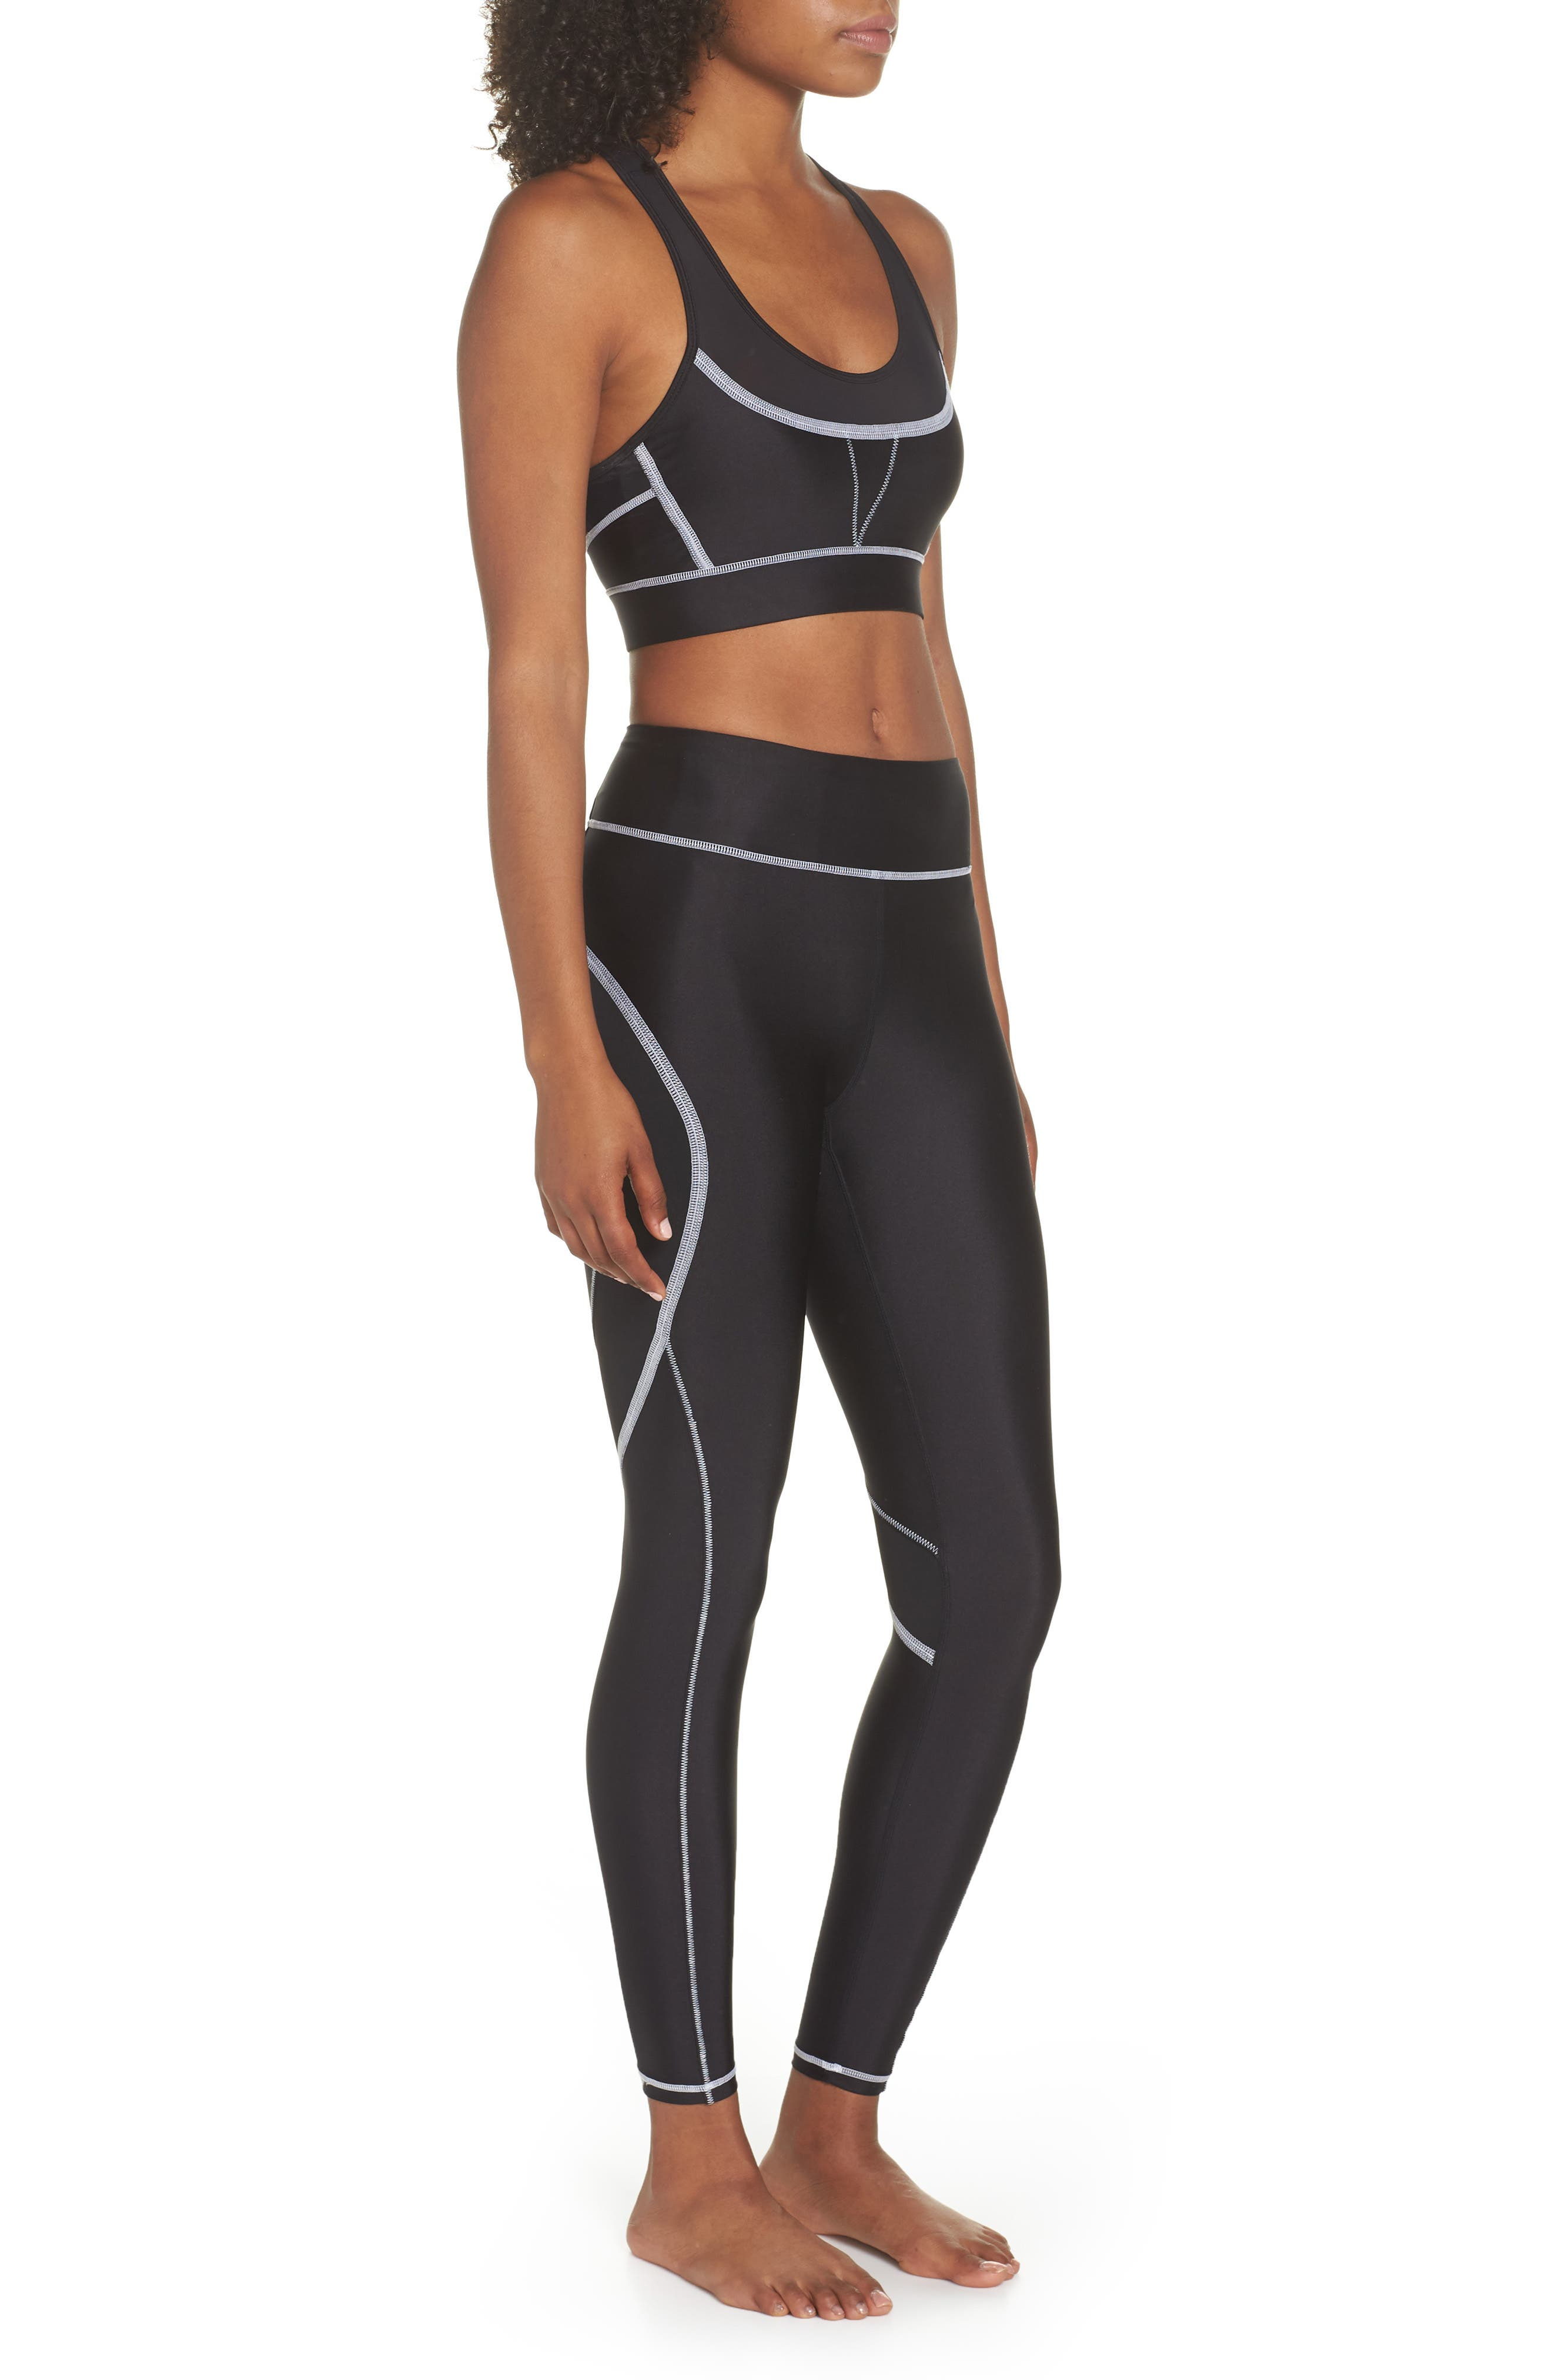 Surf Tights,                             Alternate thumbnail 10, color,                             BLACK/ WHITE